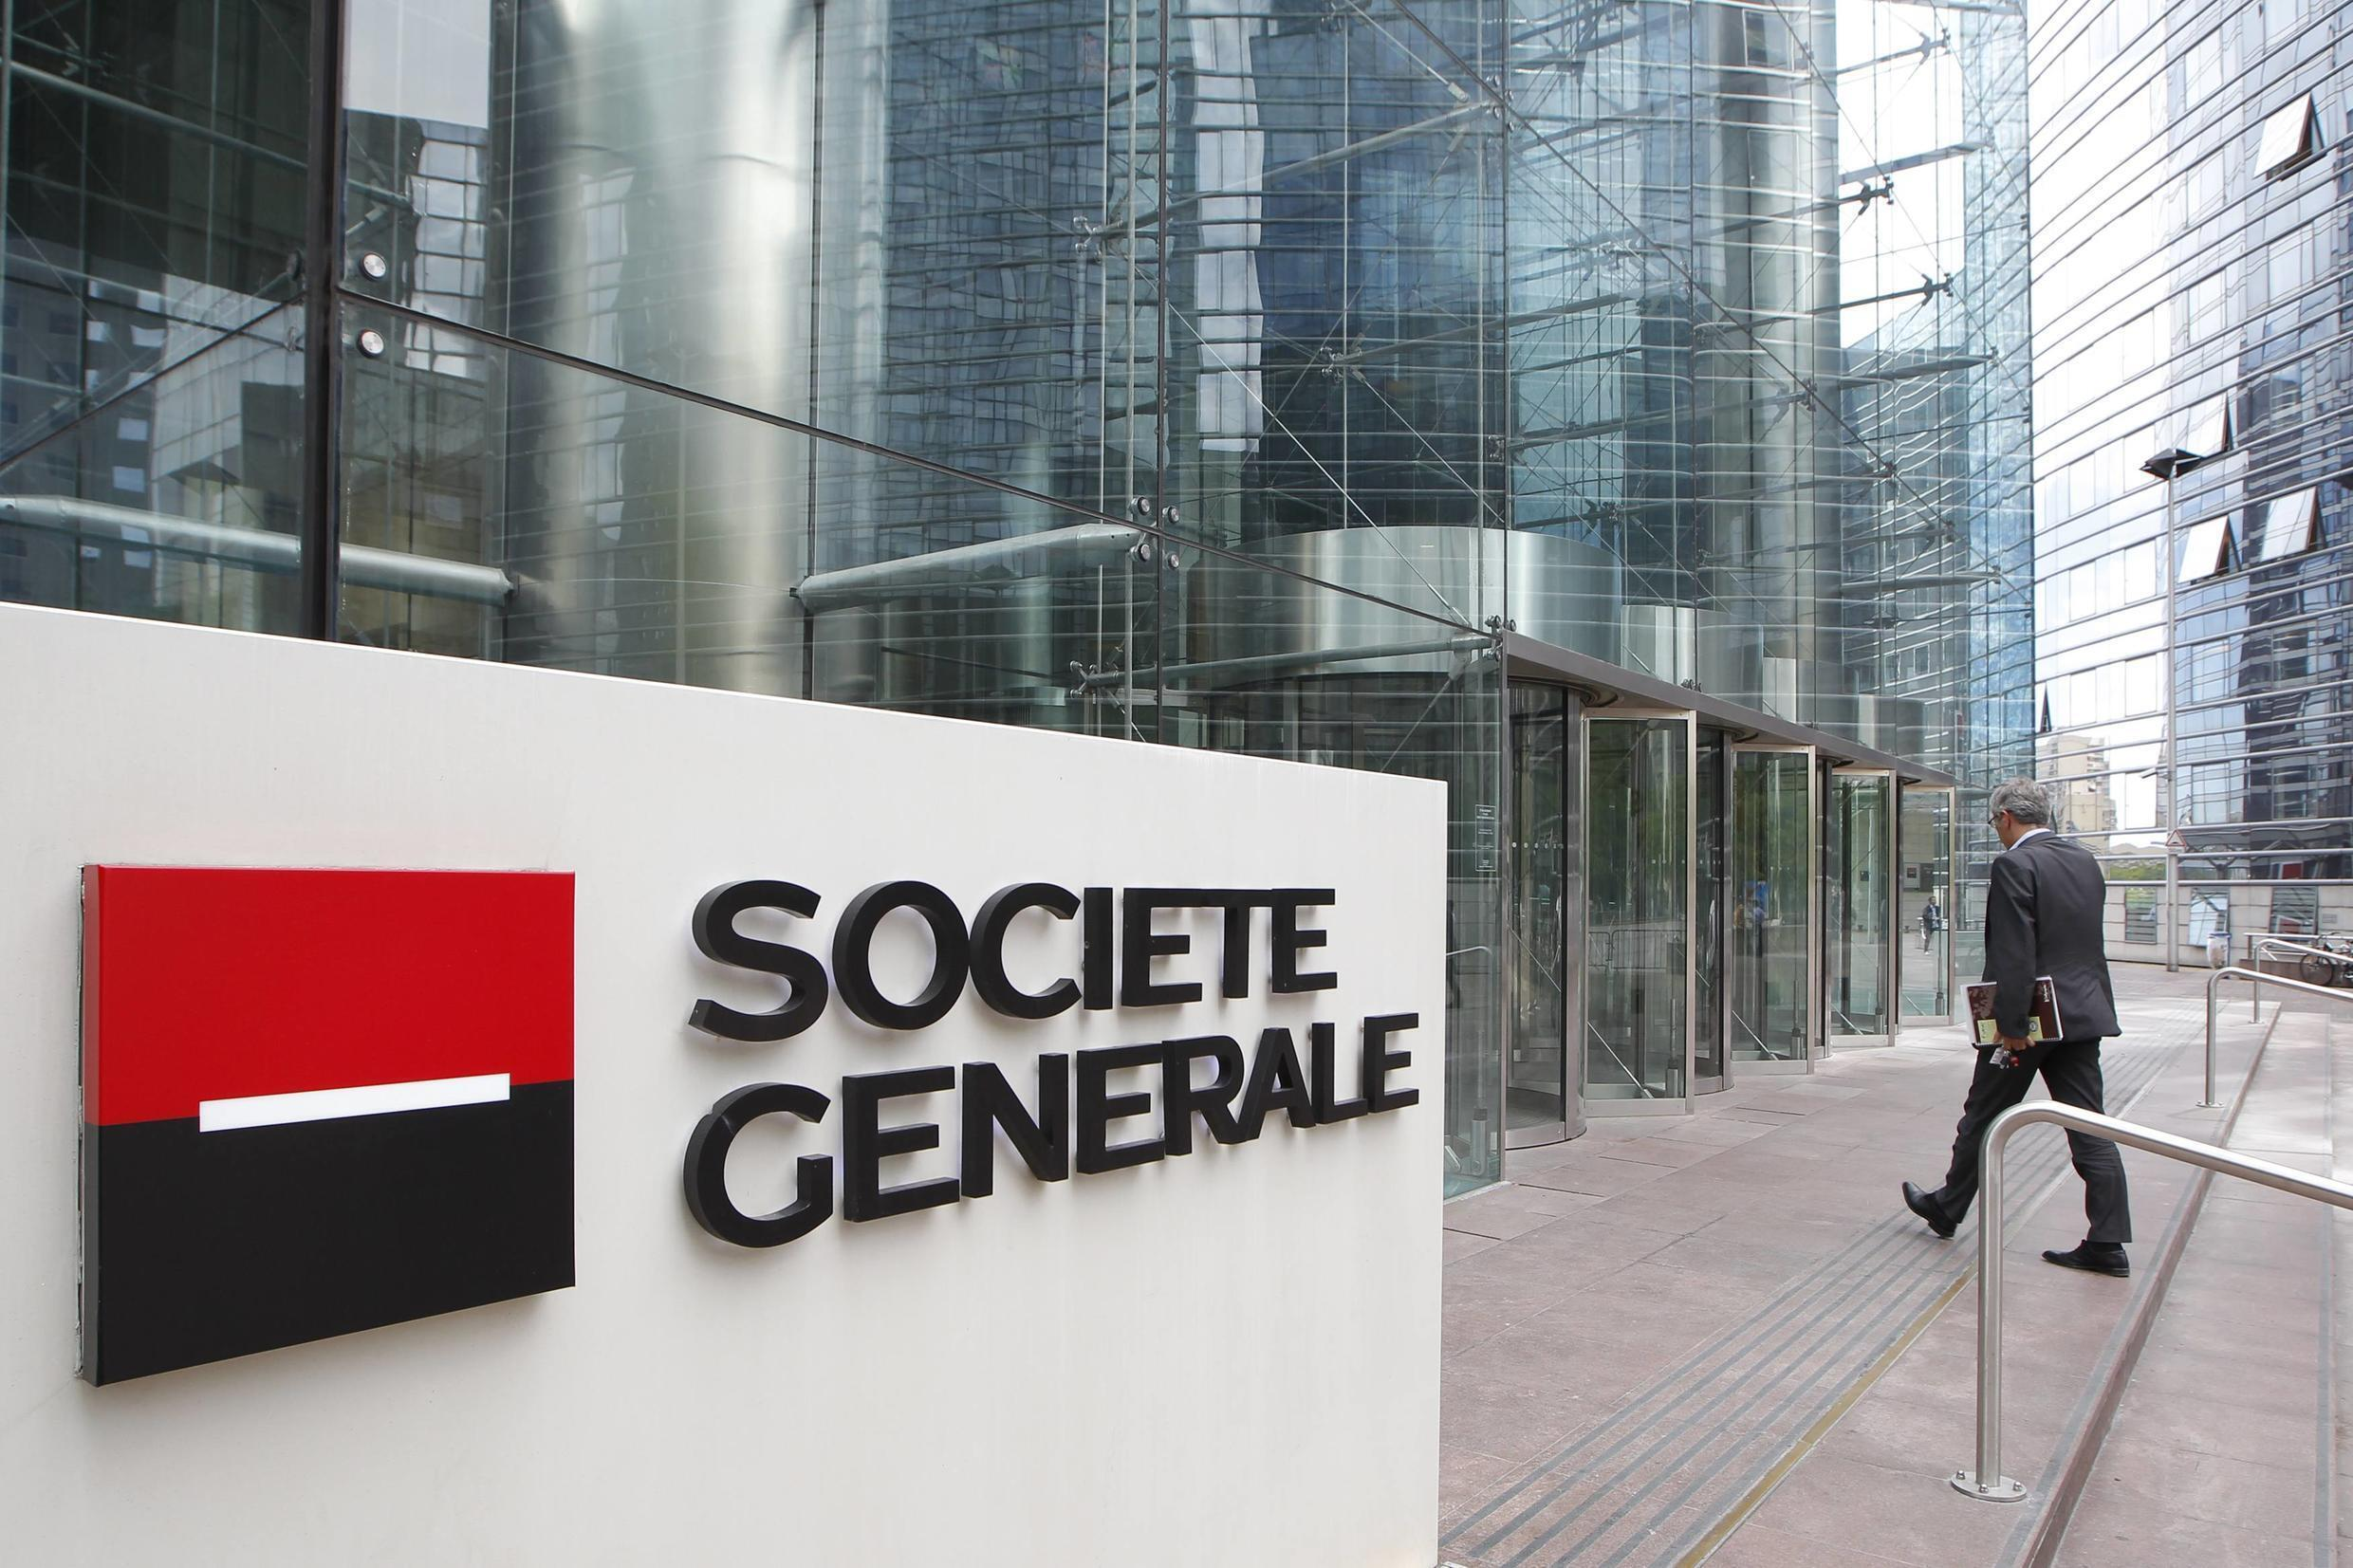 Societe Generale has been caught up in around a dozen probes and lawsuits in recent months.